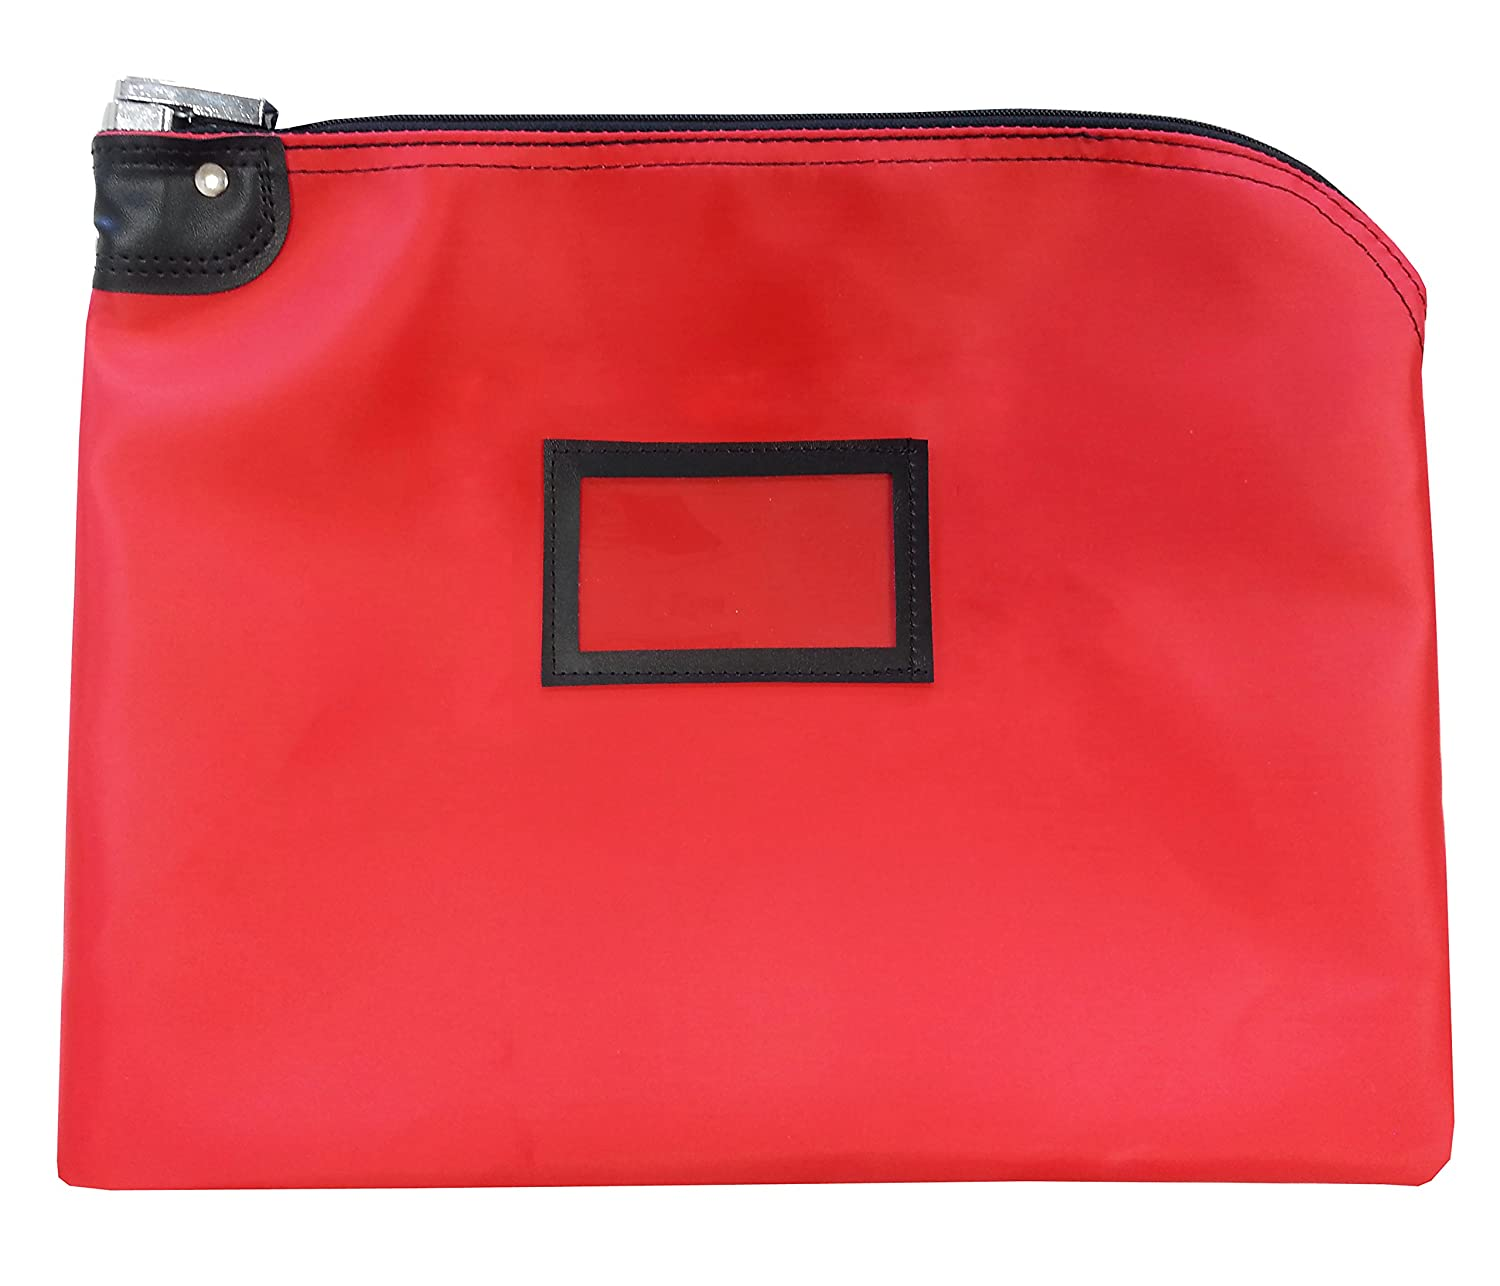 Locking Document HIPAA Bag 15 x 19 | Medical File Security | Legal Size Records Courier Bag (Burgundy) Cardinal Bag Supplies